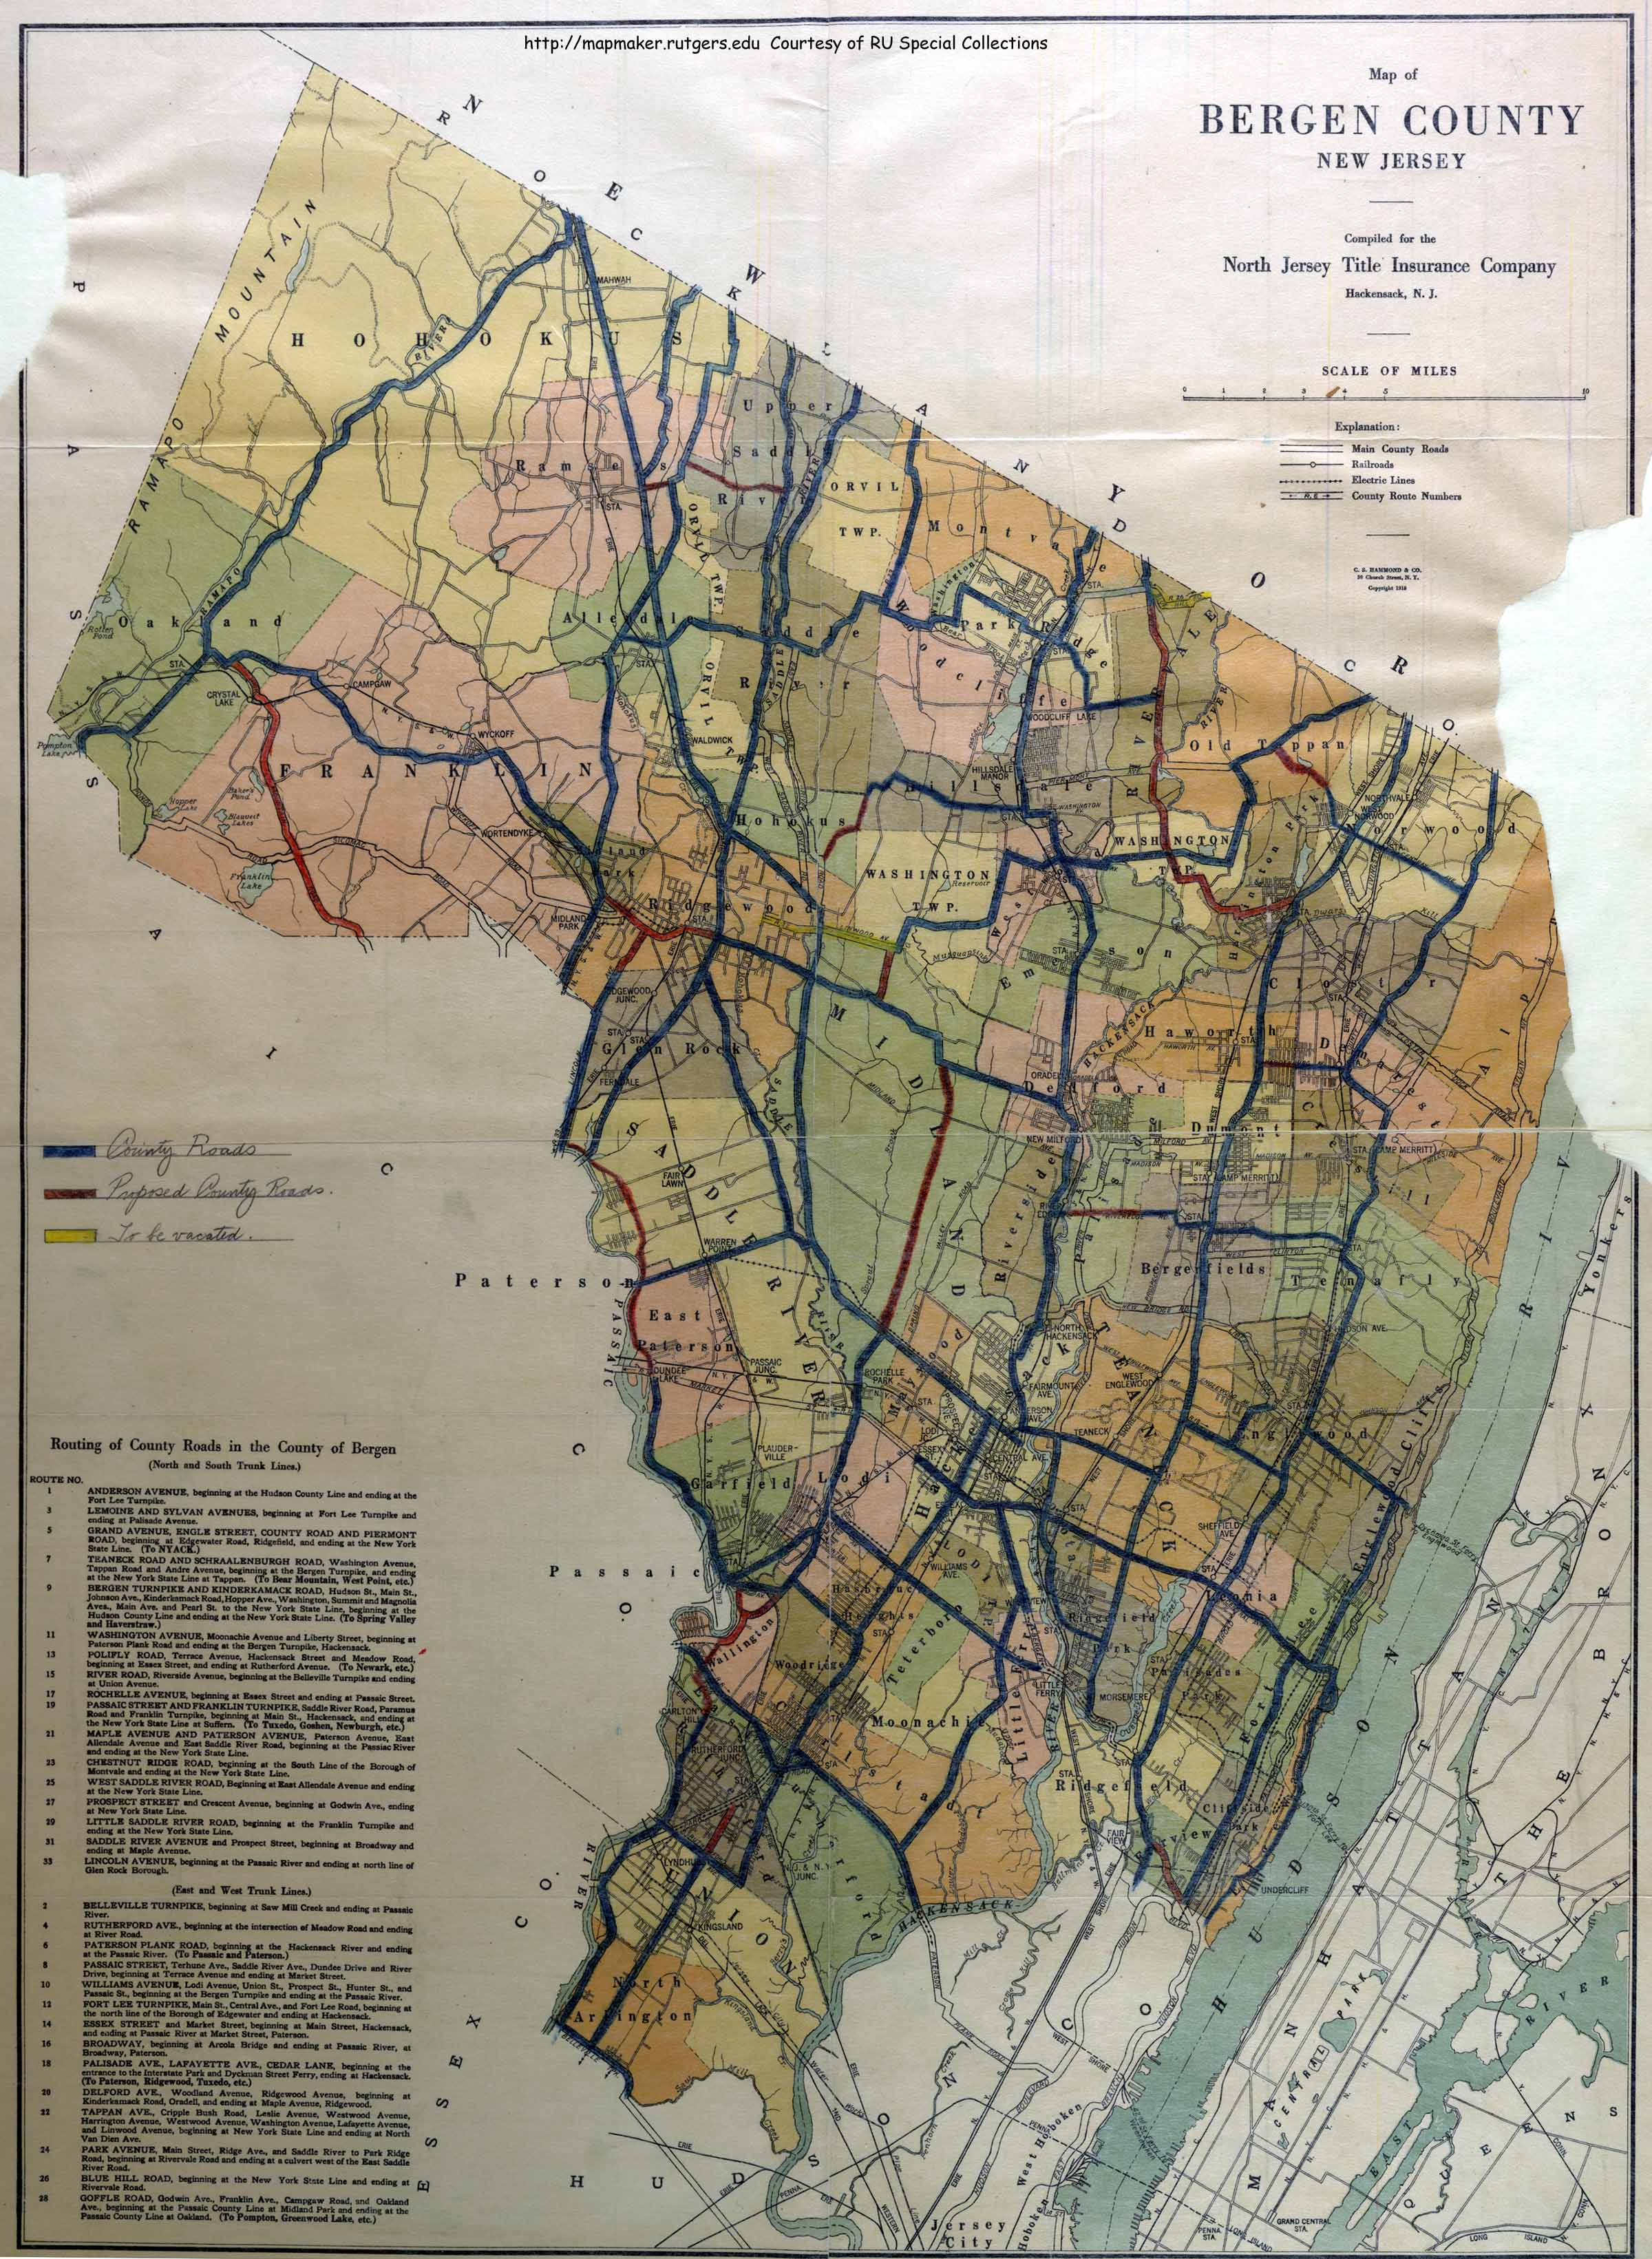 Historical Bergen County, New Jersey Maps on map of long island towns, monmouth county nj, somerset county nj, map of burlington county nj, towns in bergen county nj, map of camden county nj, map of county in nj, middlesex county nj, towns in union county nj, map of middlesex county, warren county nj, cities in passaic county nj, map of berks county pa, cities in bergen county nj, map of north jersey towns, map of morris county nj, map of essex county, map of rockland county ny, map of monmouth county new jersey, map of bergen county towns,